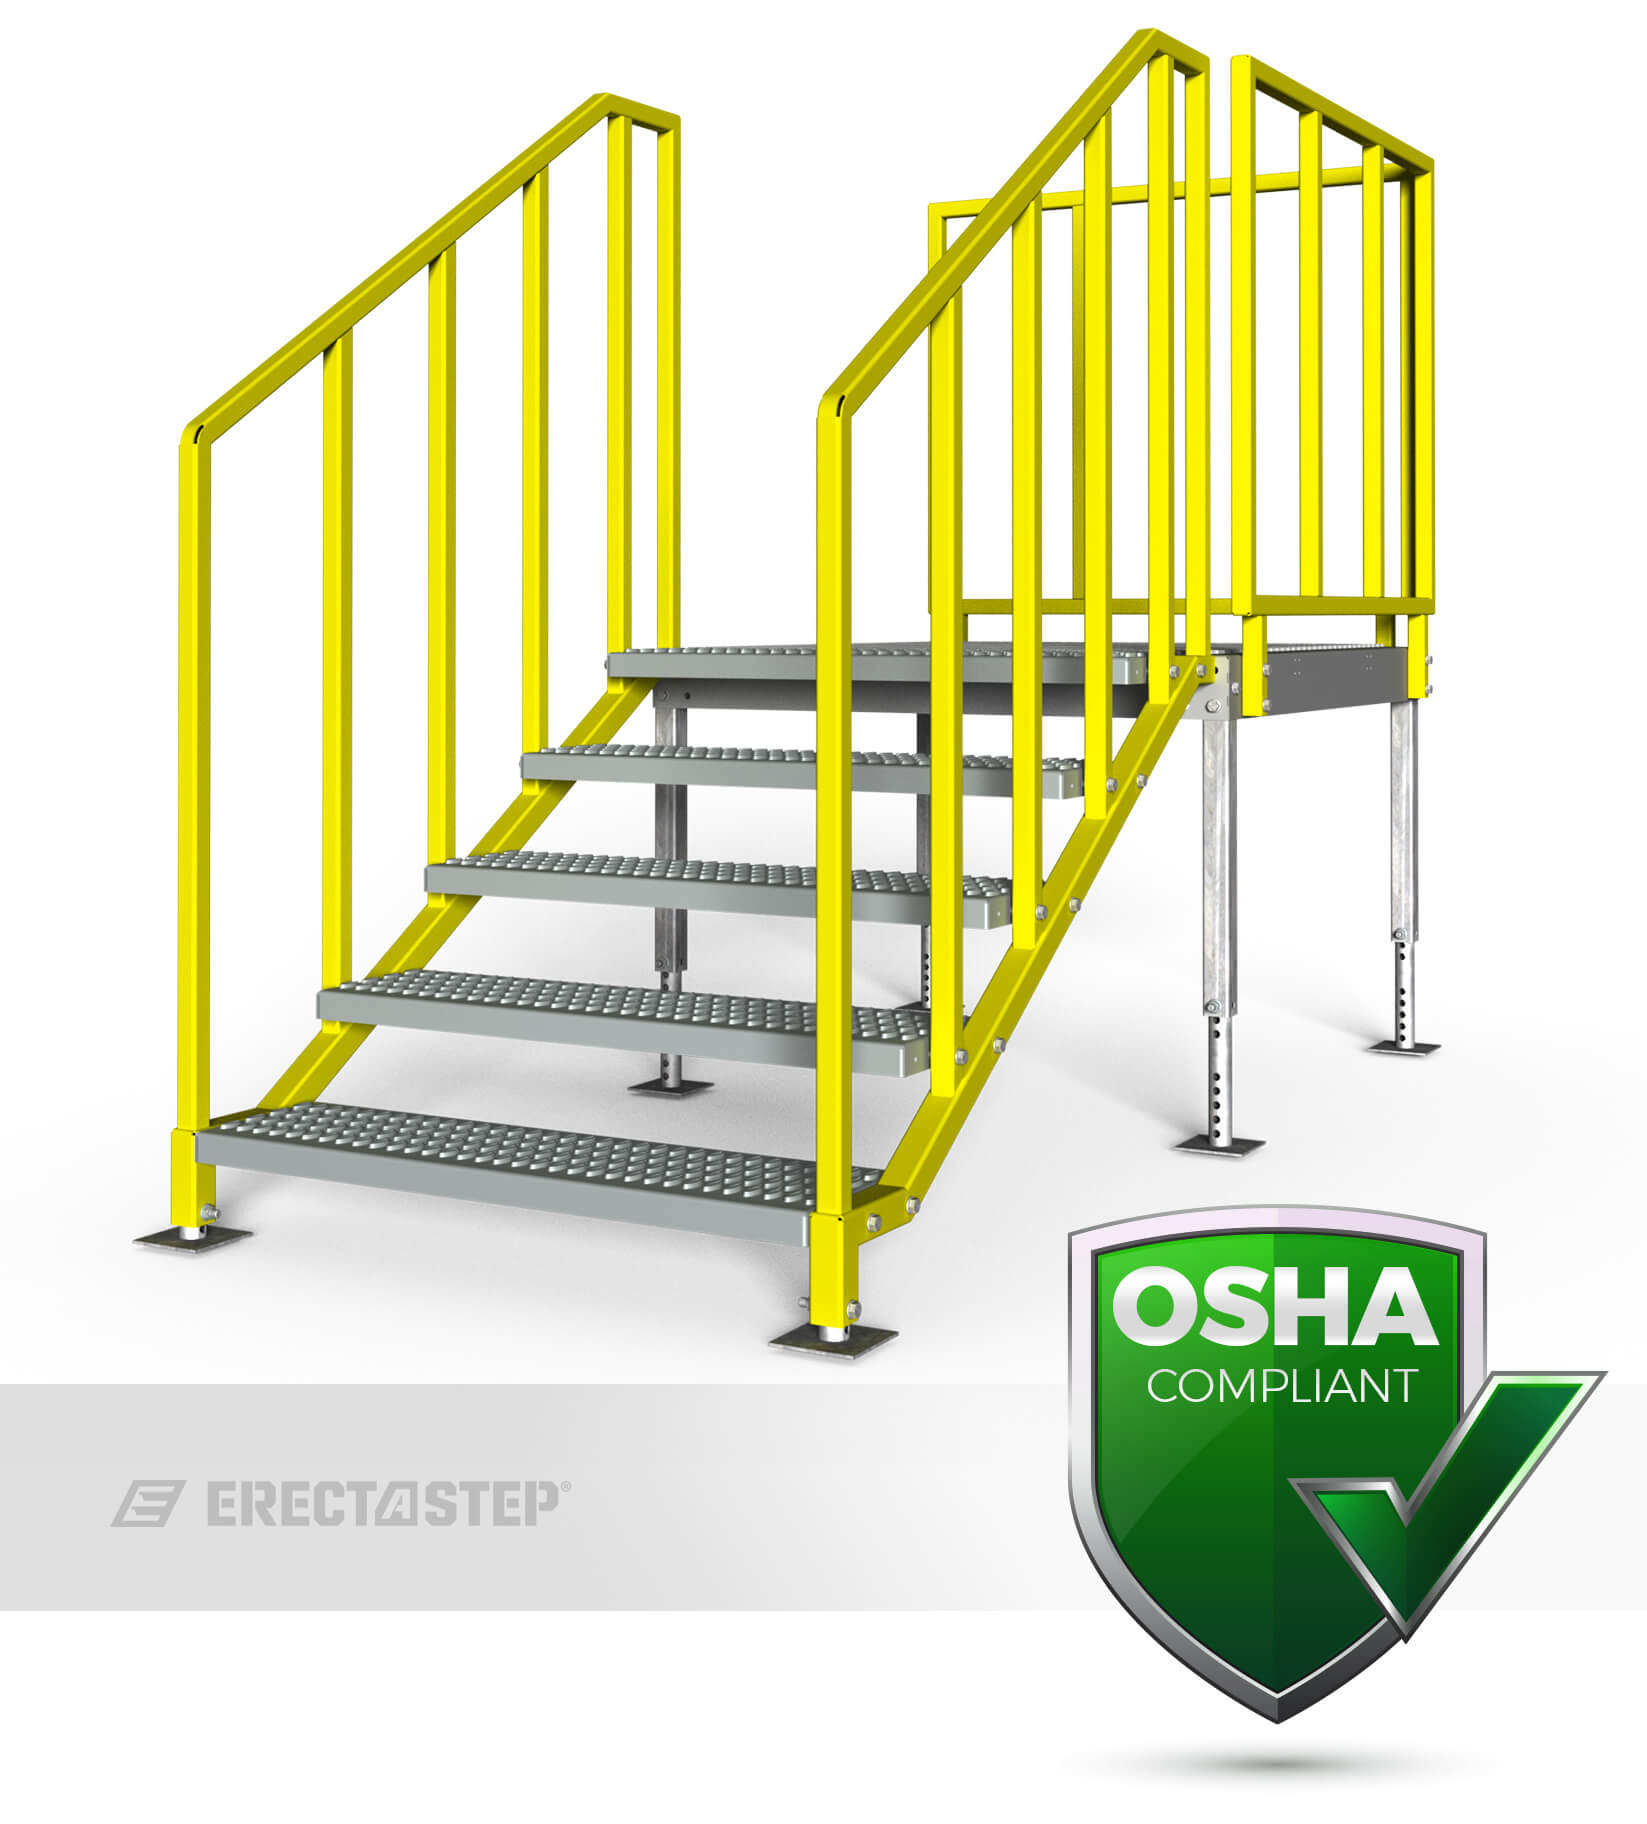 Portable Stairs With Handrail : Portable stairs left entry erectastep